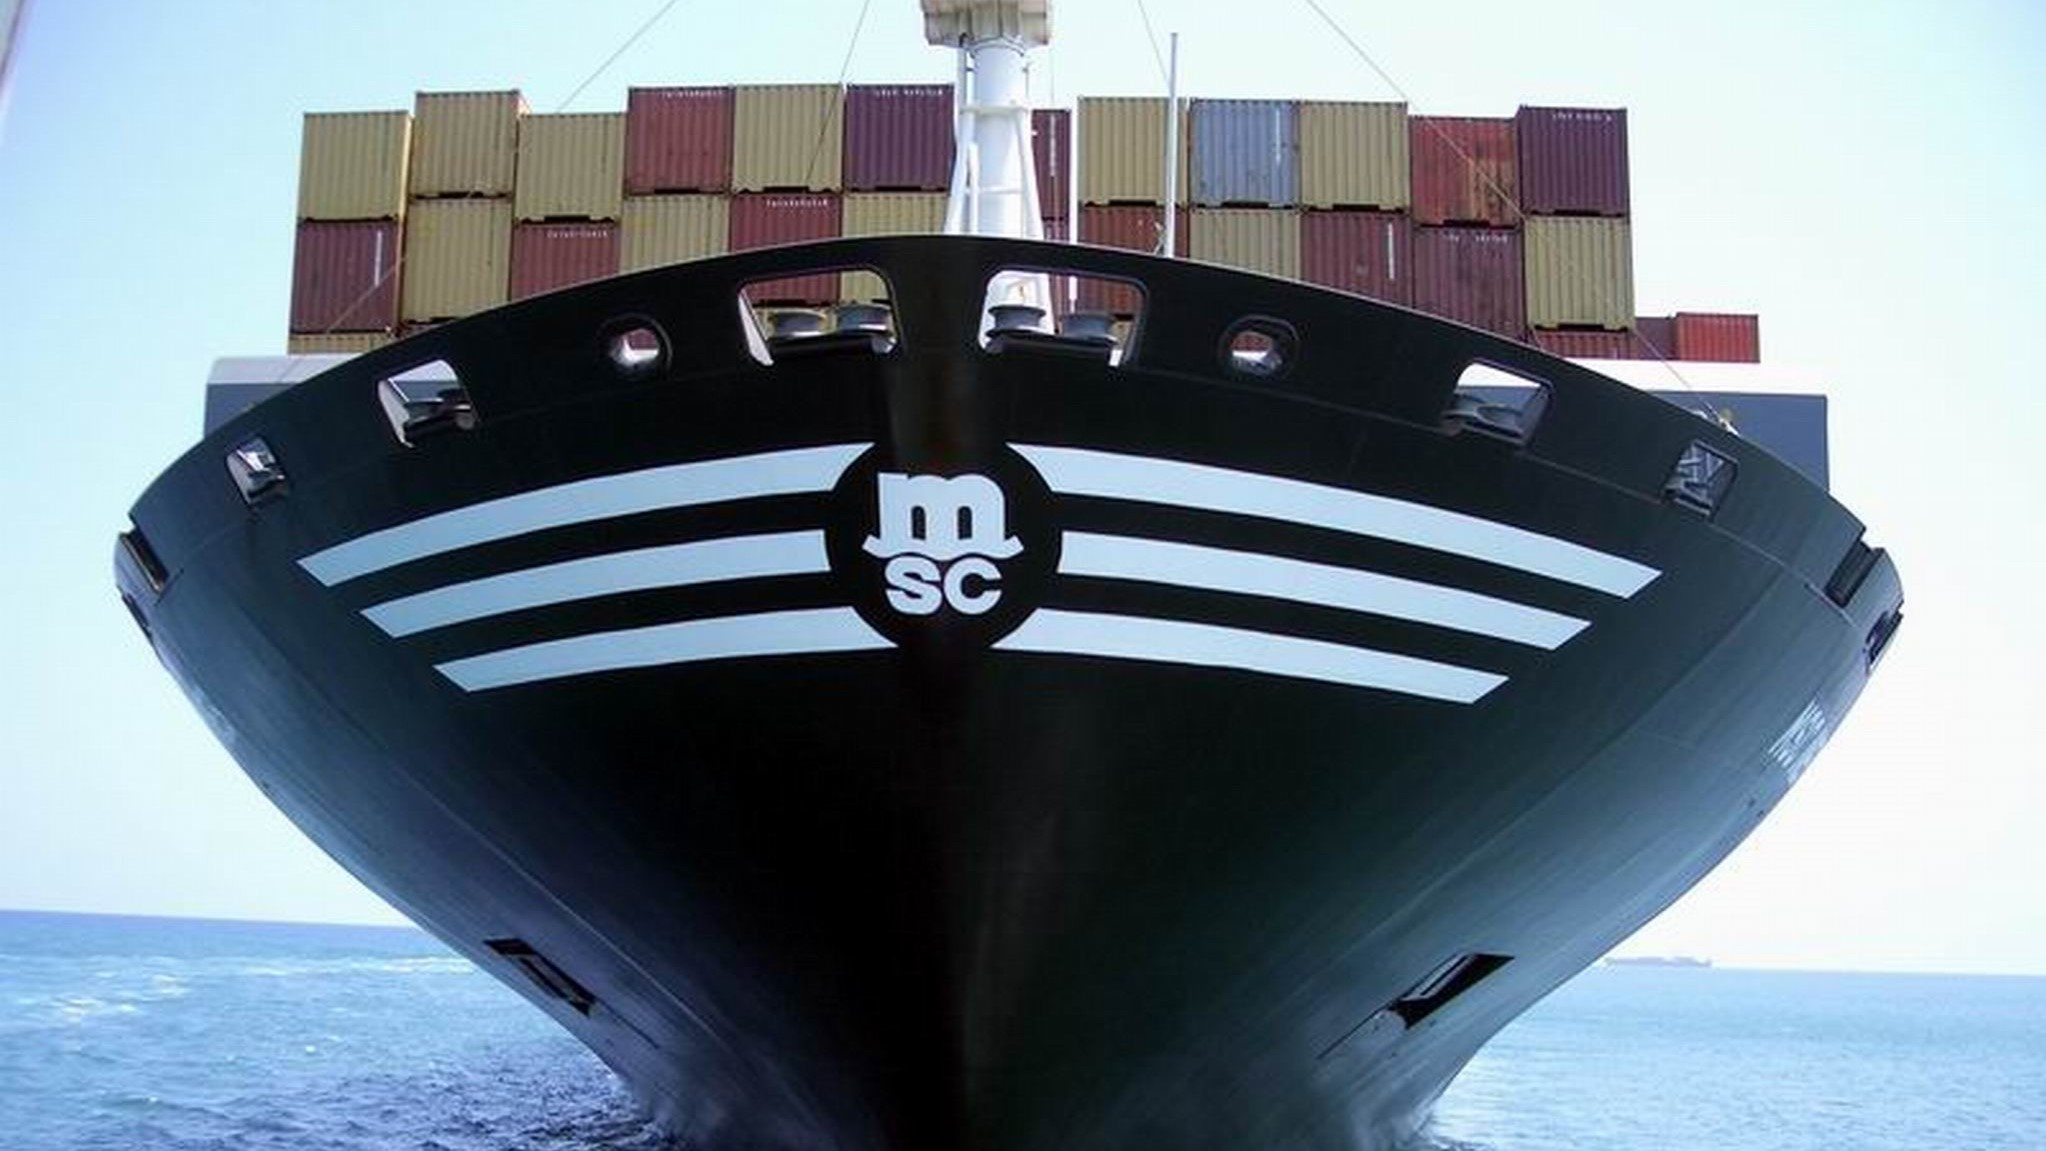 Maersk Container Ship Jobs